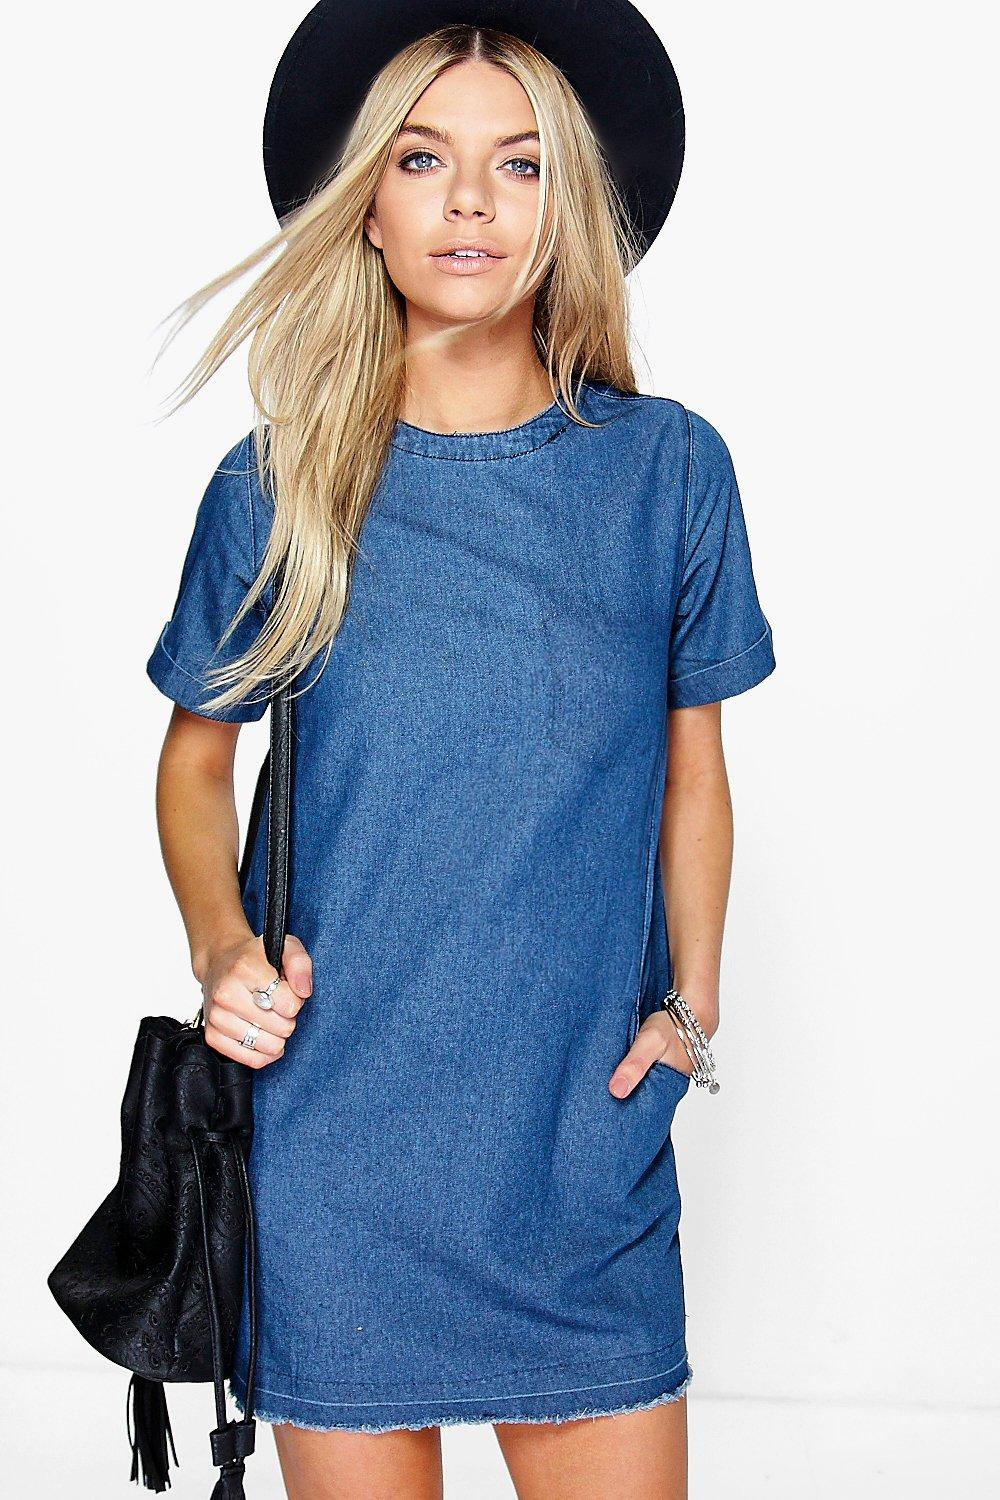 lois slouch pocket denim dress. hover to zoom ISTXUMJ